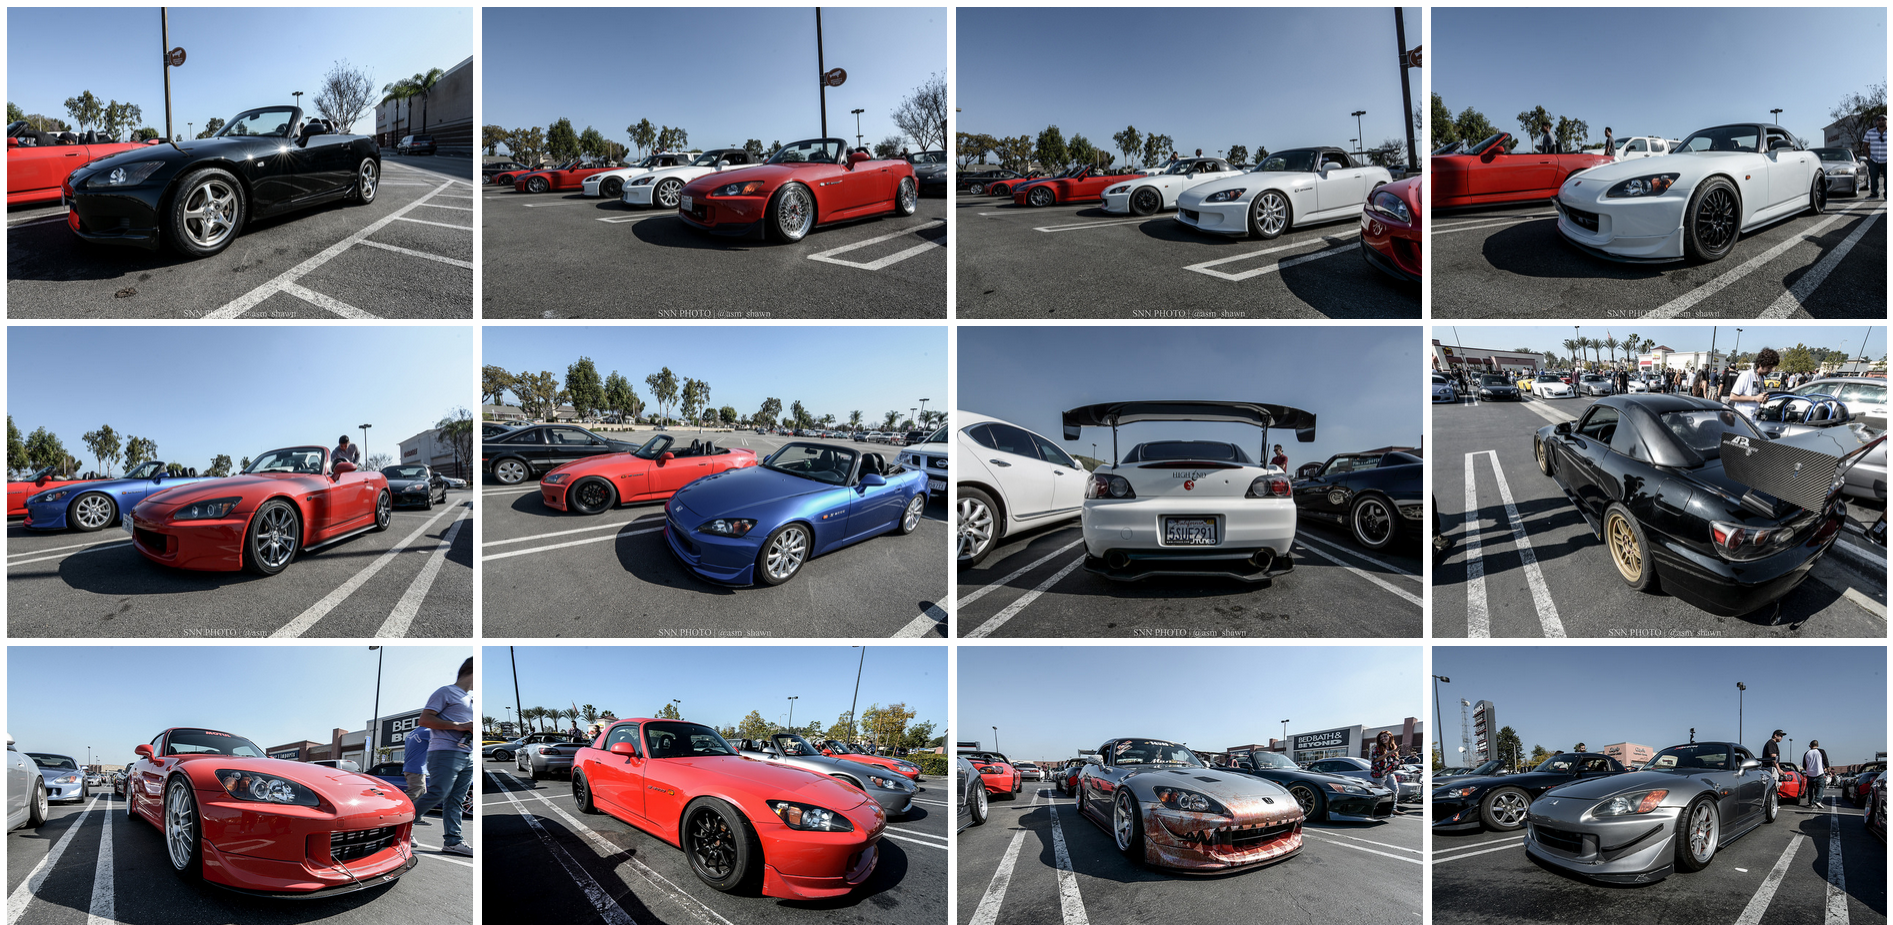 S2K Beach Day Gallery Thumbnails